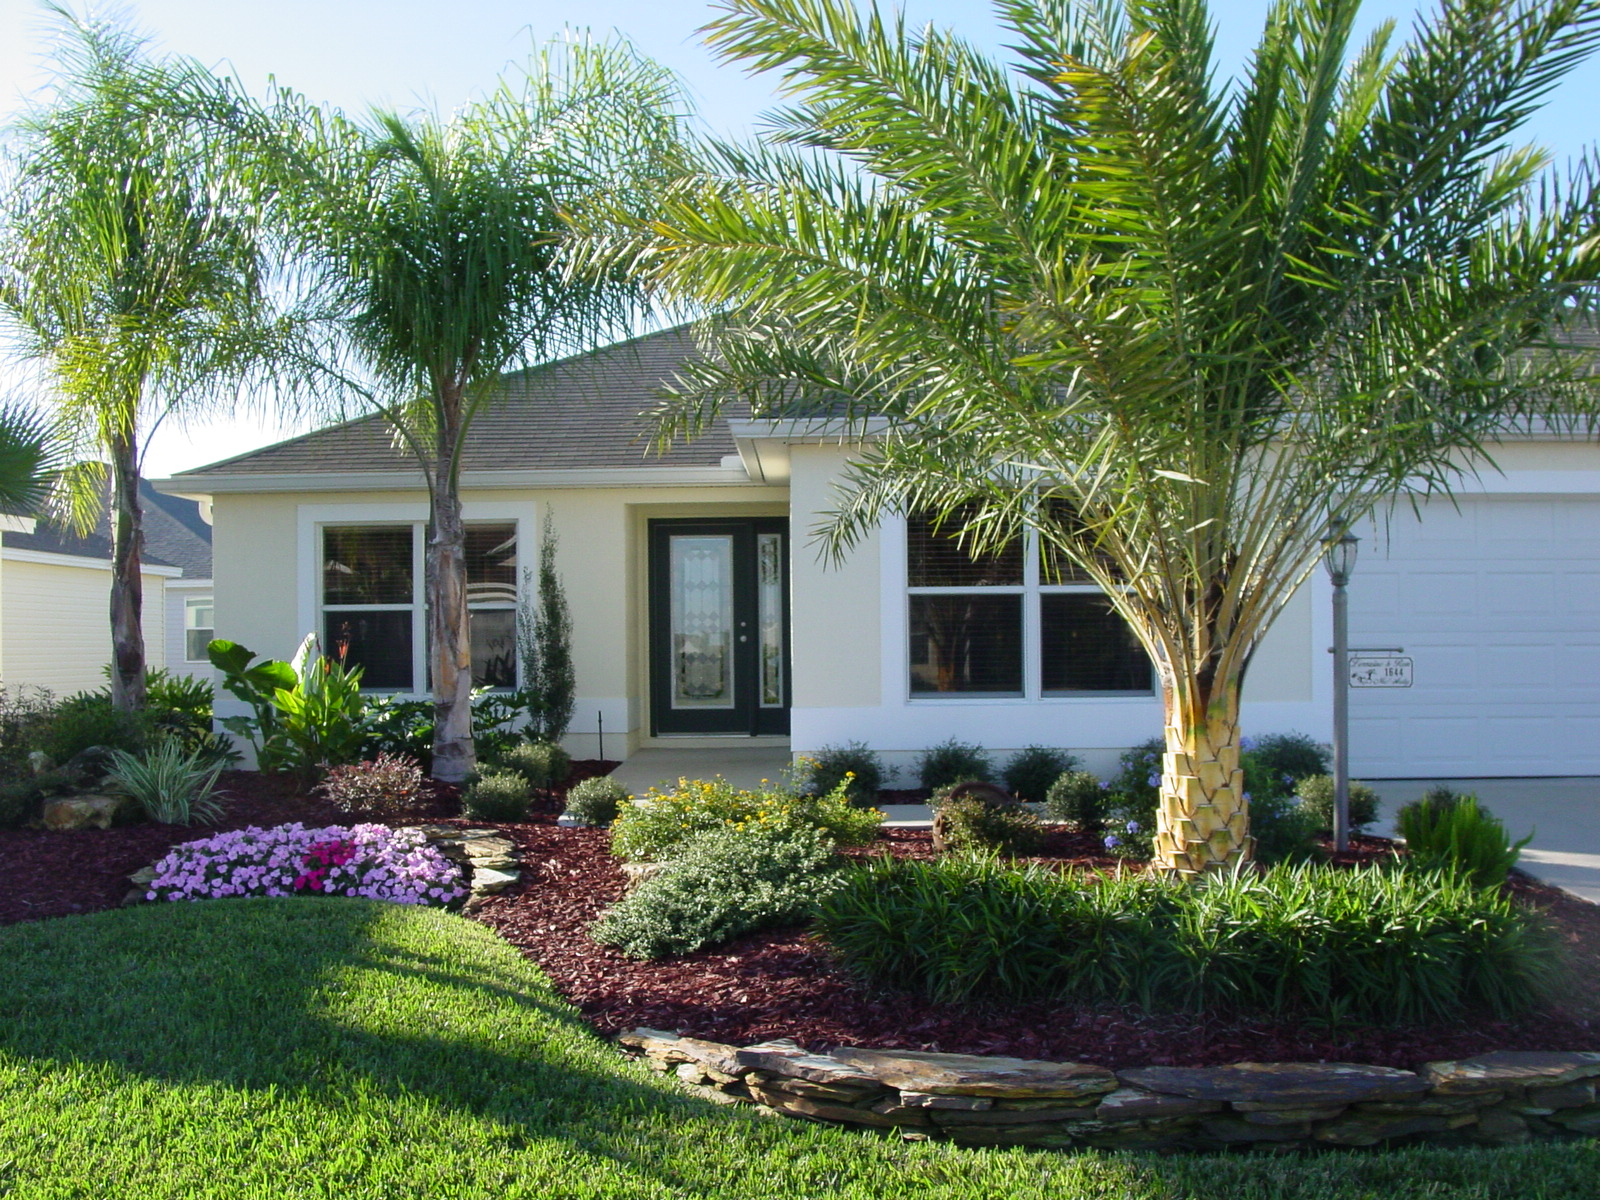 Florida garden landscape ideas photograph rons landscaping for House garden landscape